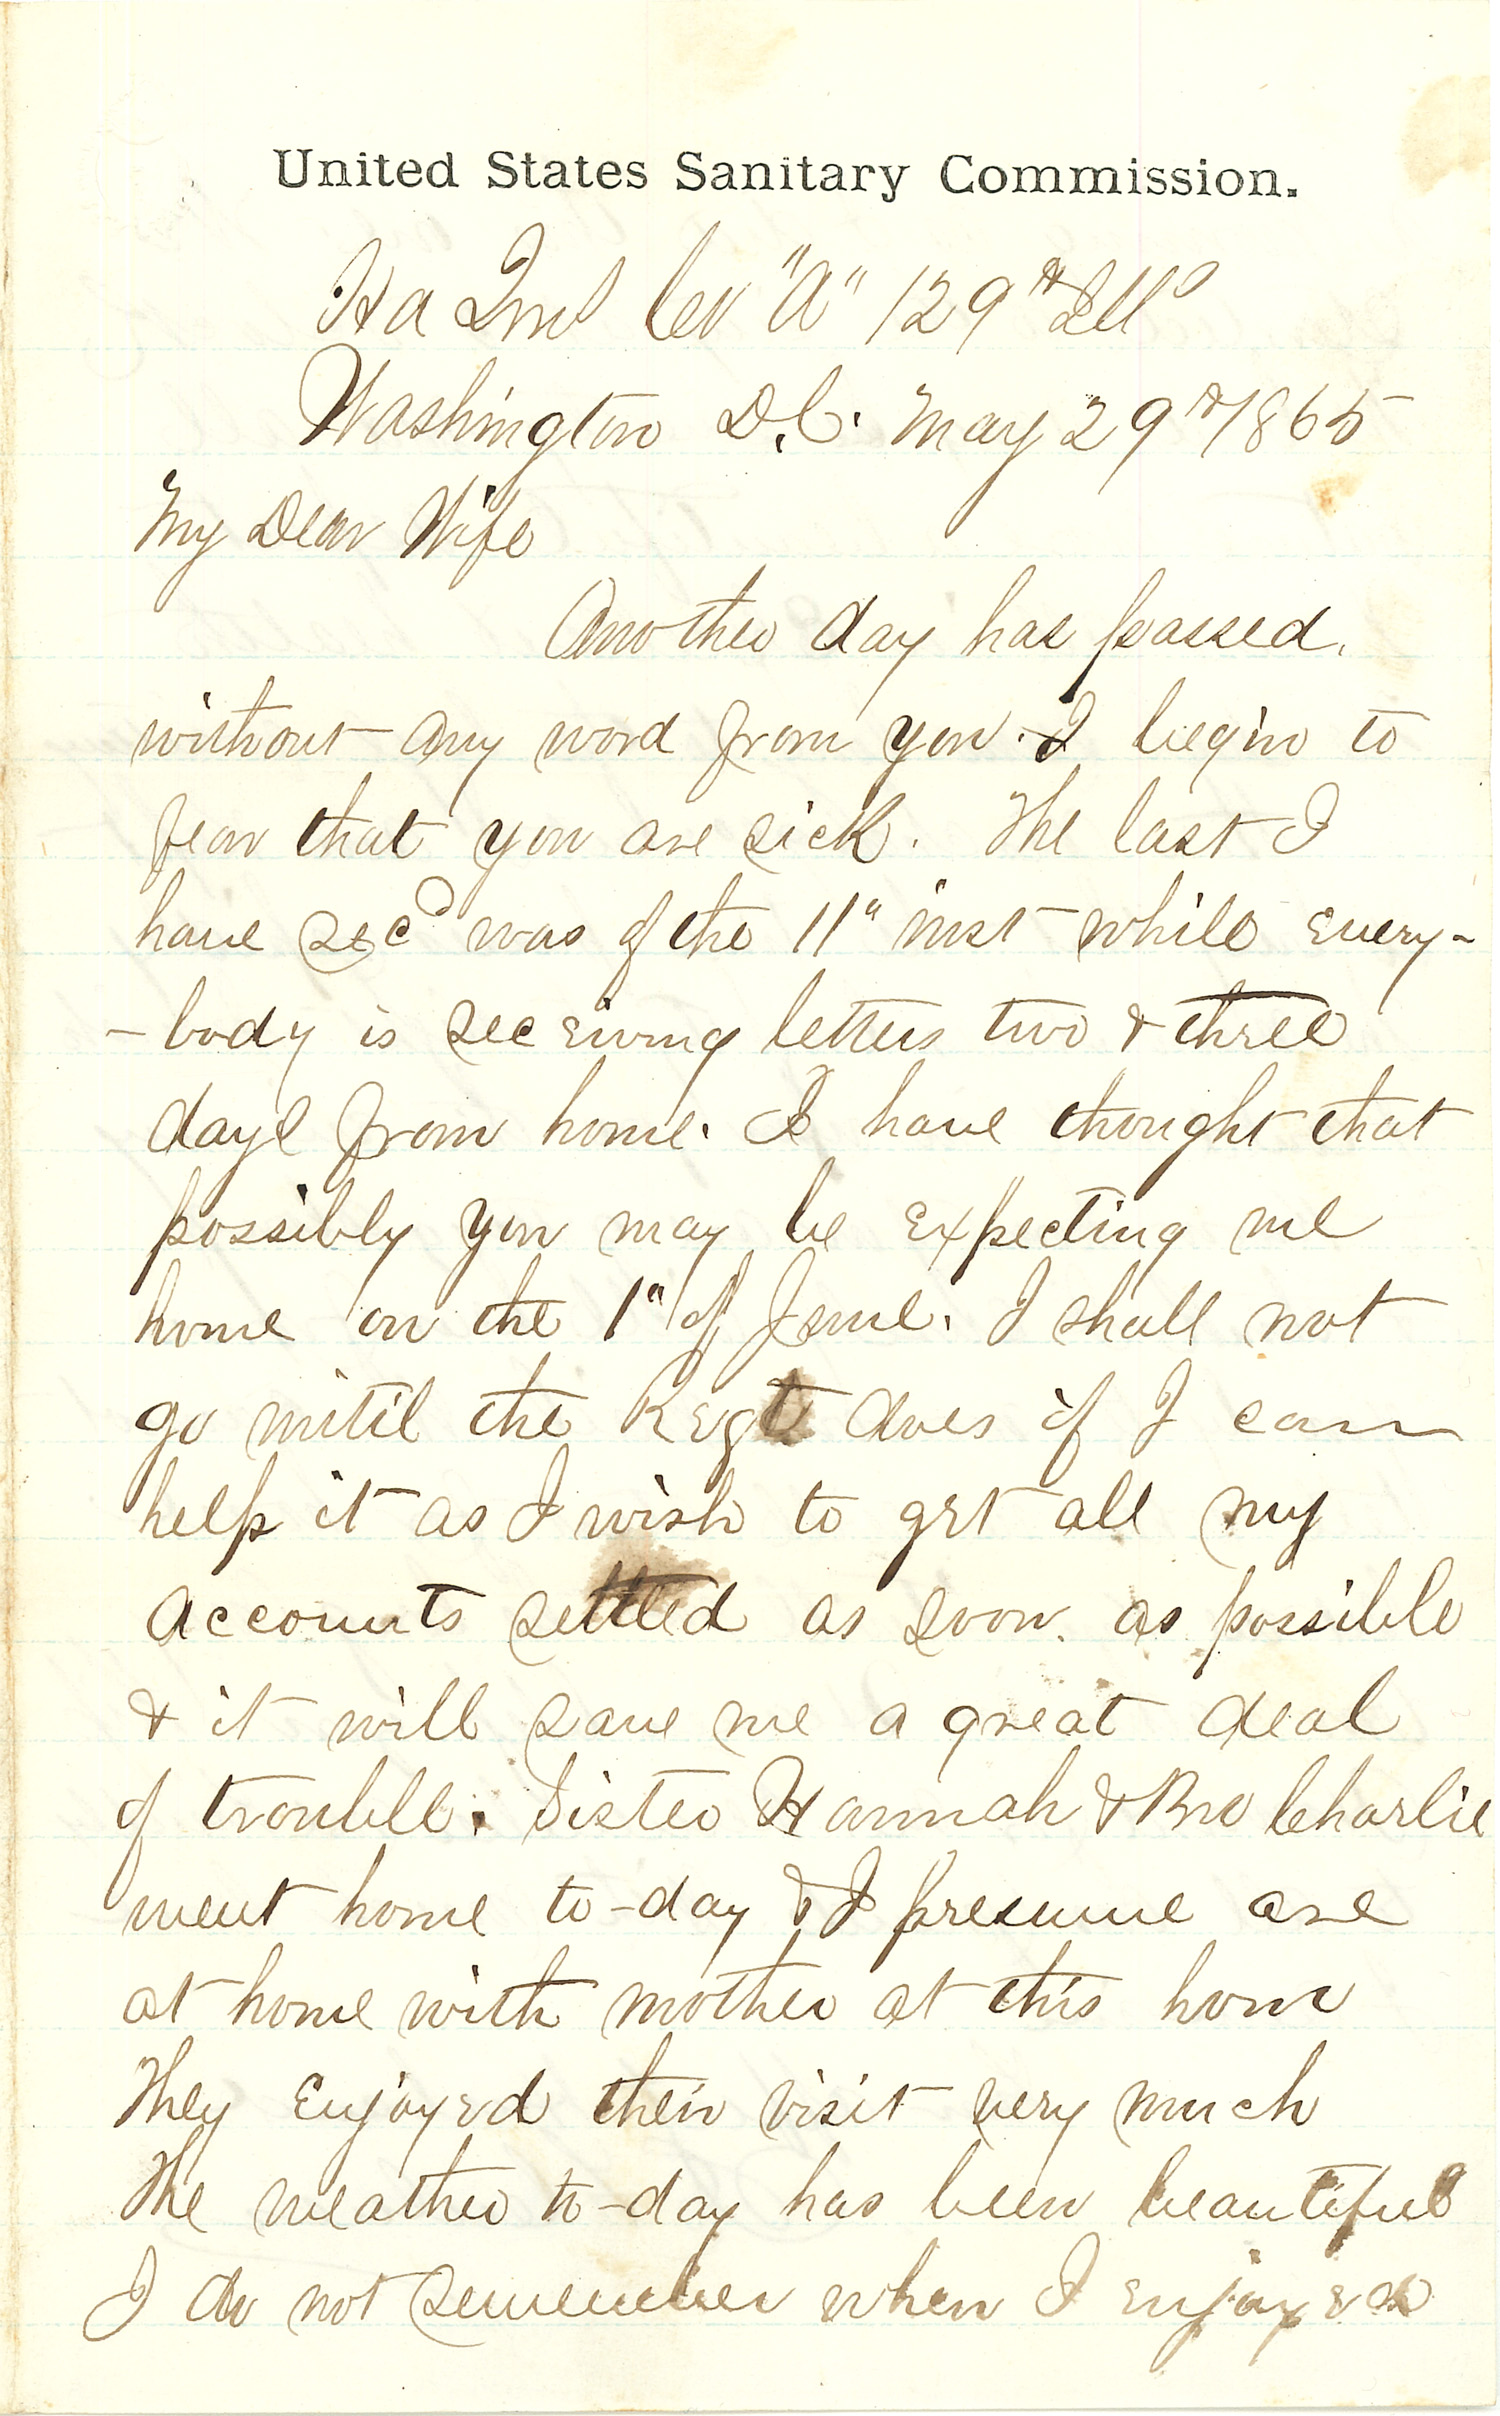 Joseph Culver Letter, May 29, 1865, Page 1